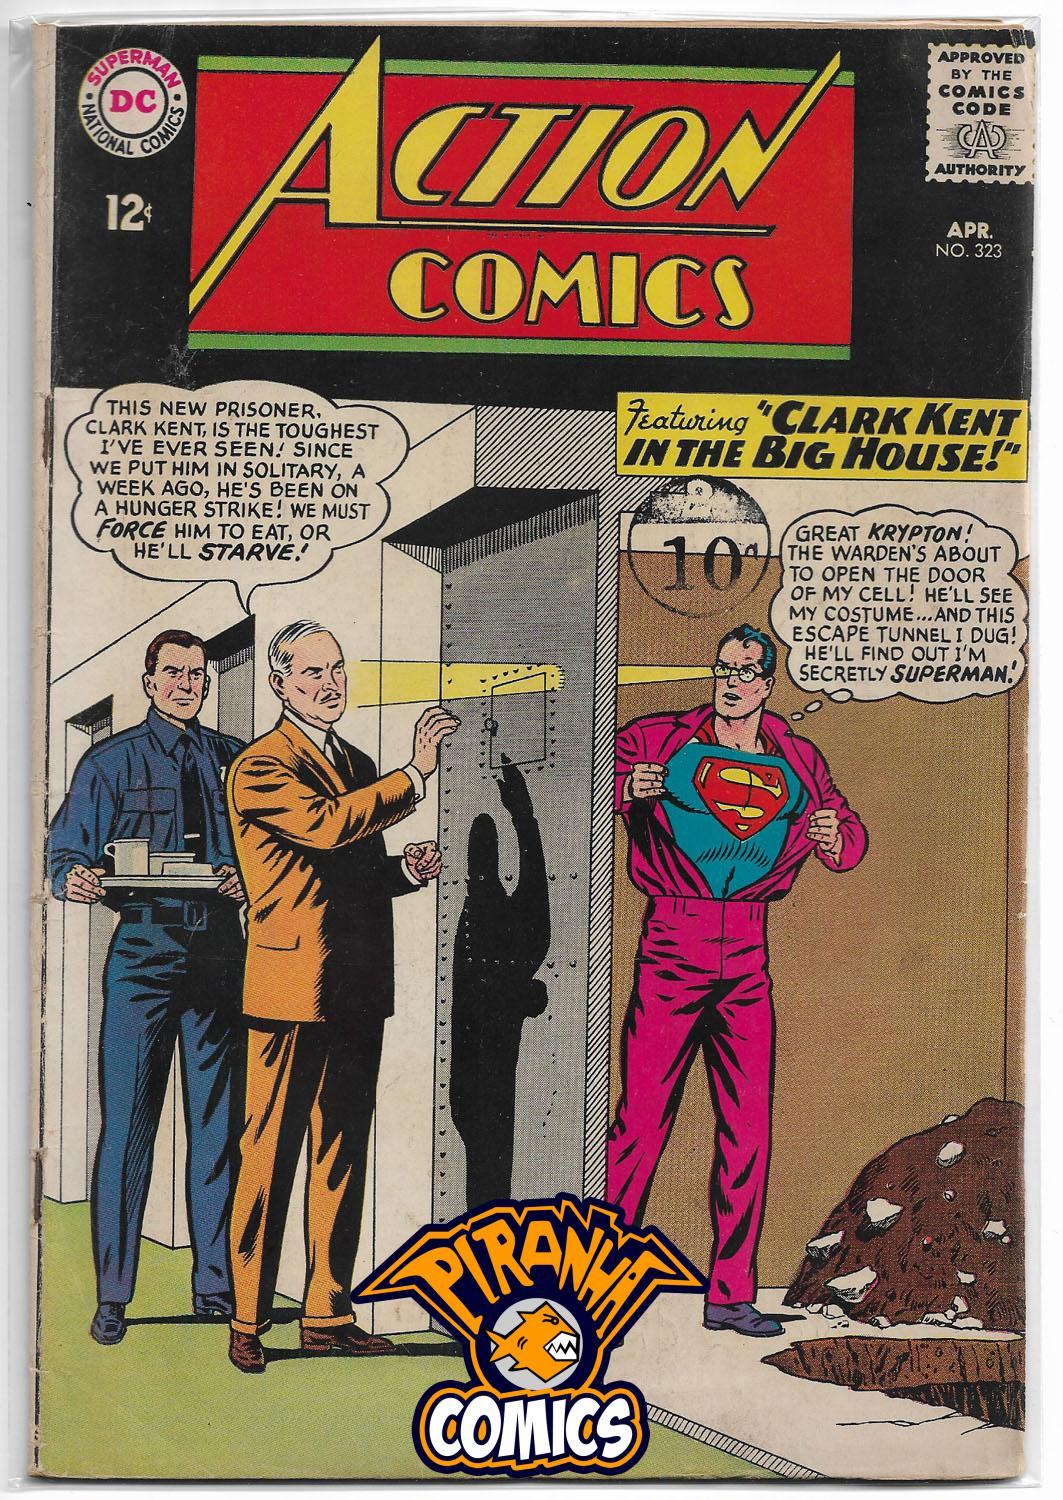 ACTION COMICS #323 (1938) GD DC